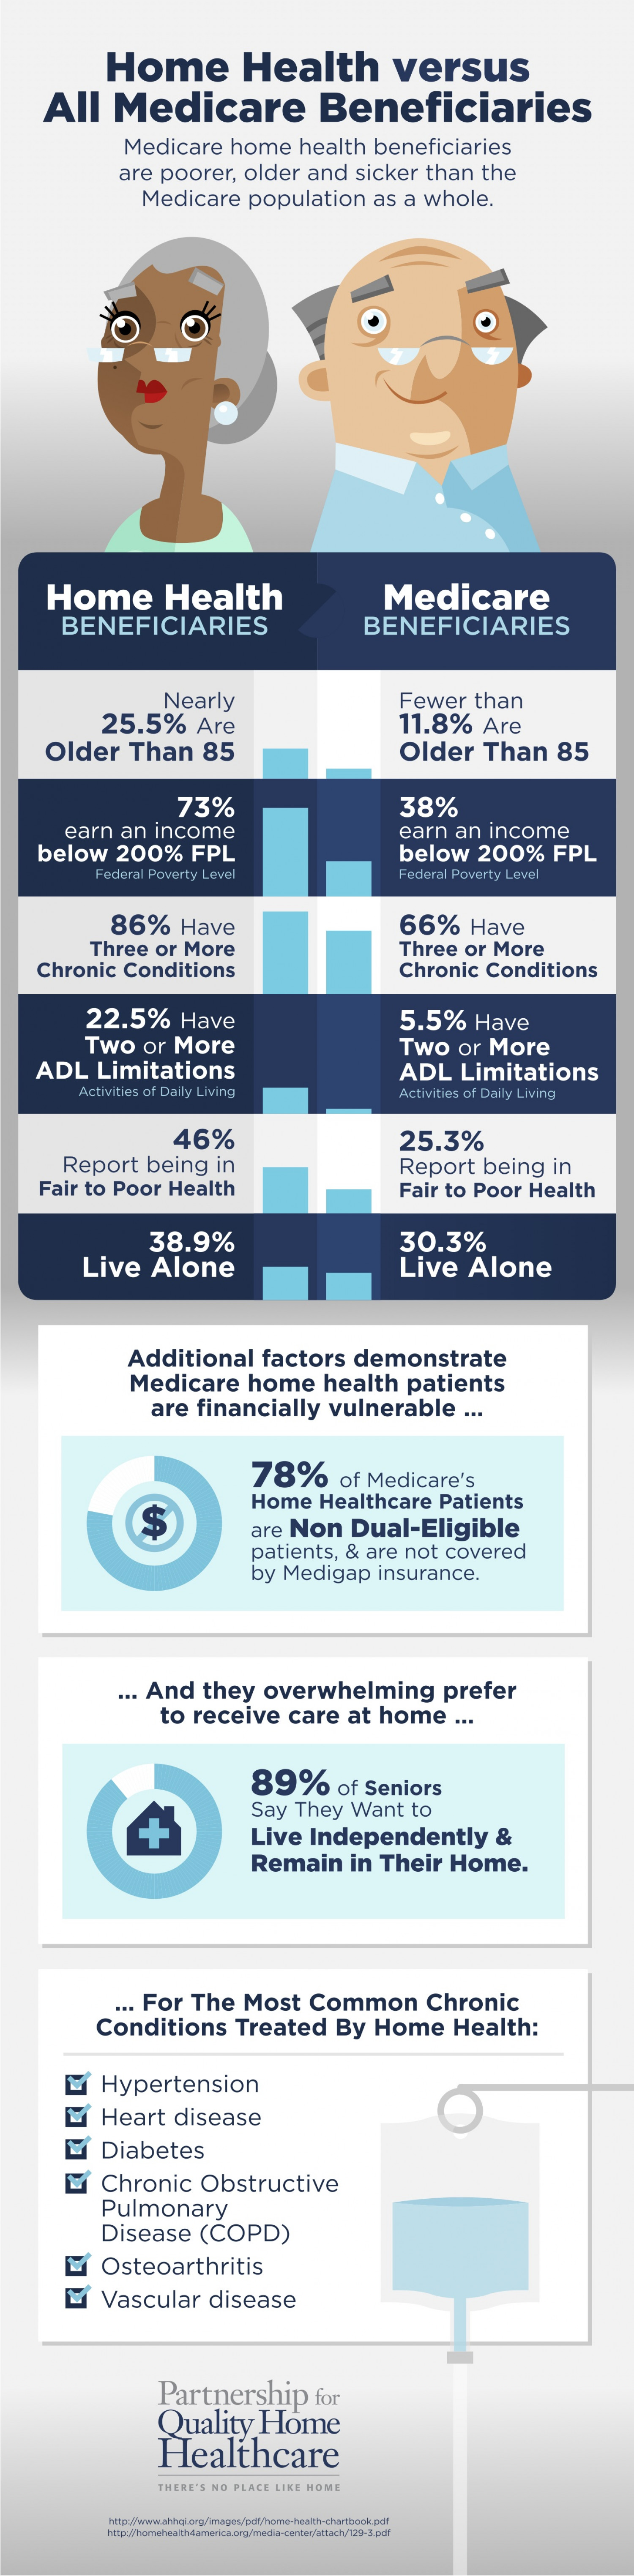 Home Health Patients Versus All Medicare Beneficiaries Infographic